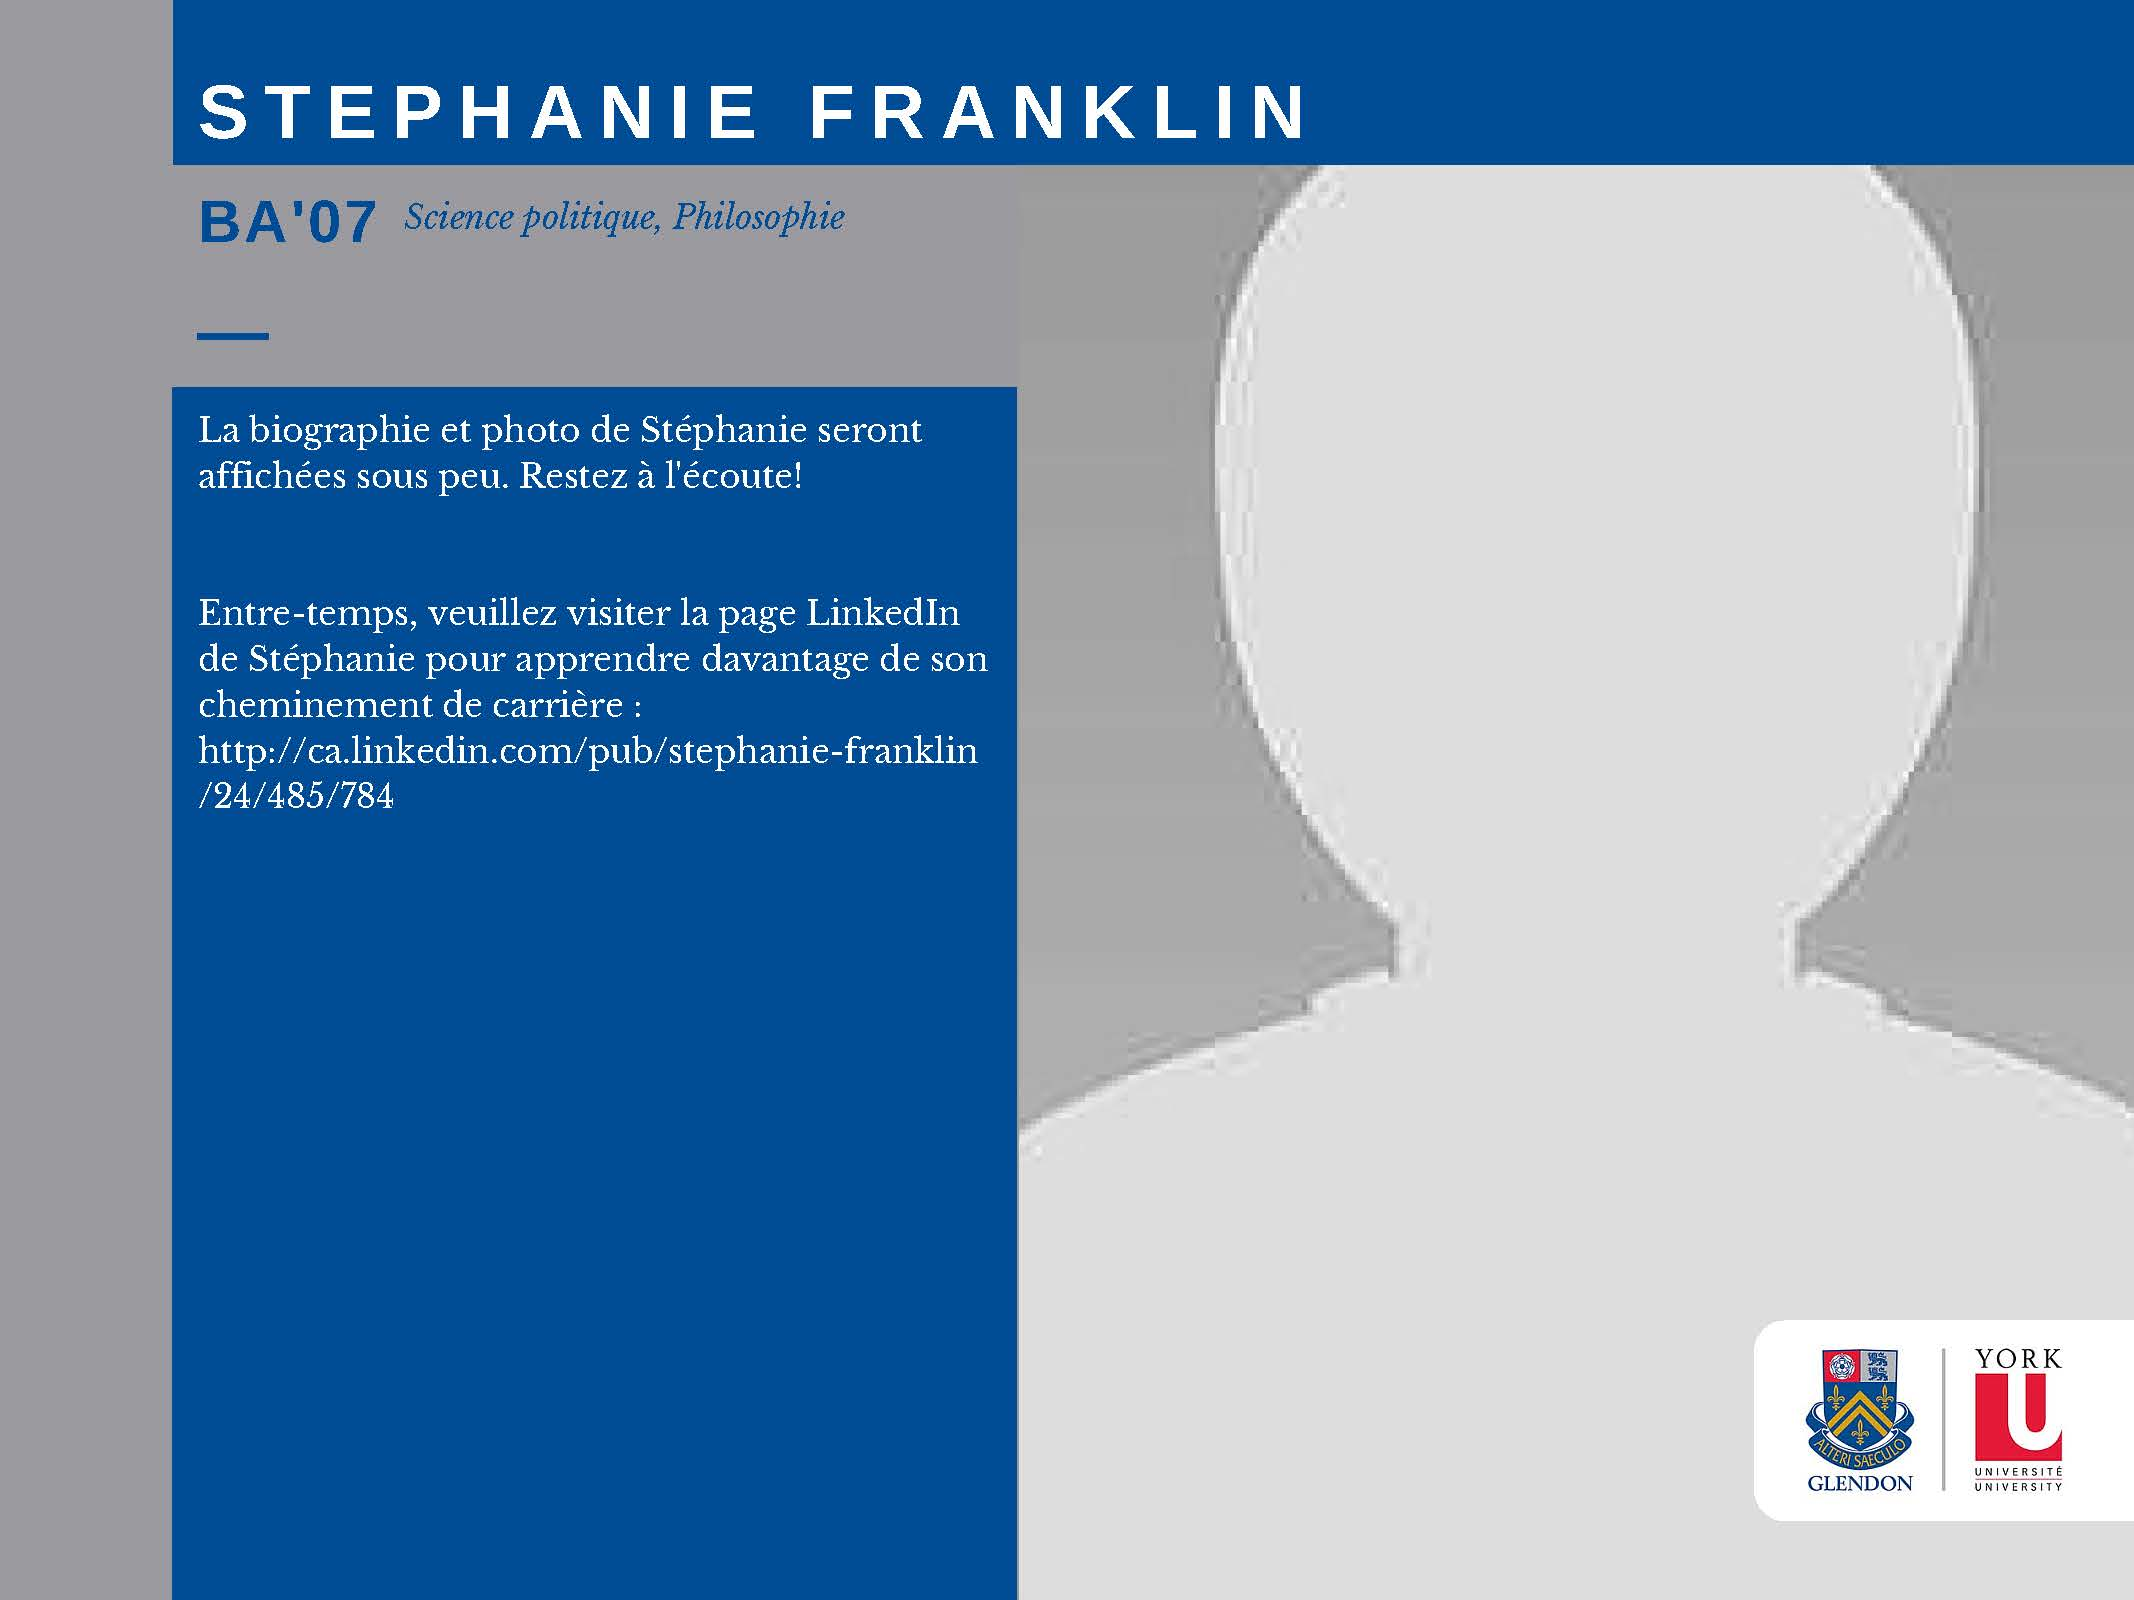 Stephanie Franklin FR